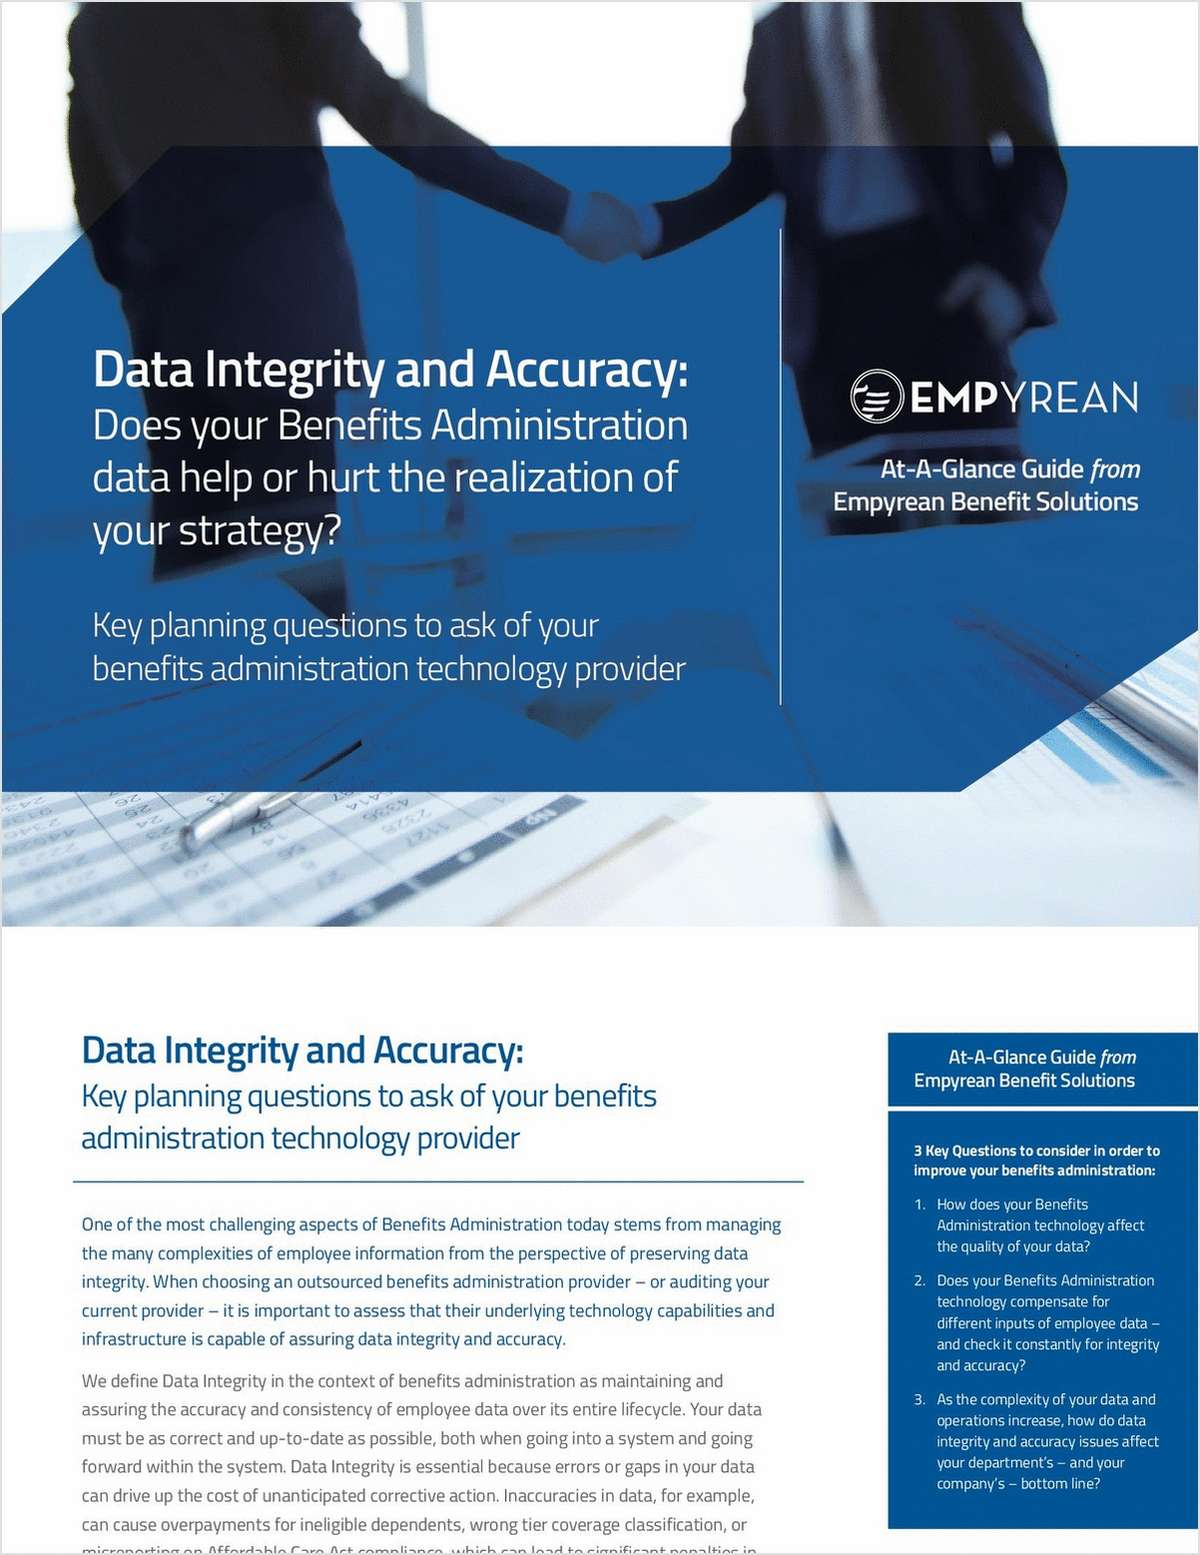 Data Integrity and Accuracy: Does Your Benefits Administration Data Help or Hurt the Realization of Your Strategy?